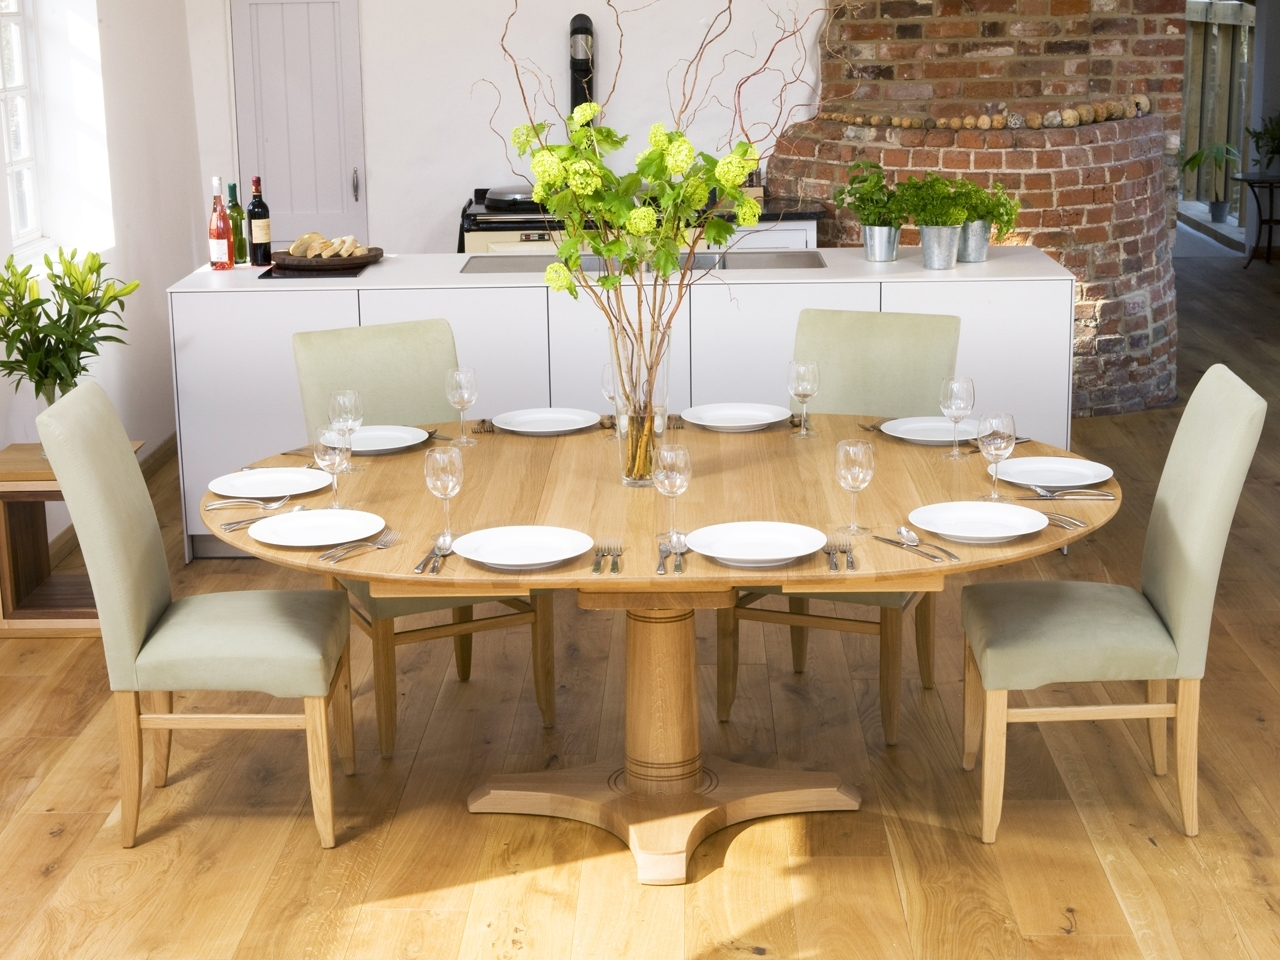 Berrydesign And The Ideal Home Show Intended For Newest Small Round Extending Dining Tables (View 5 of 25)